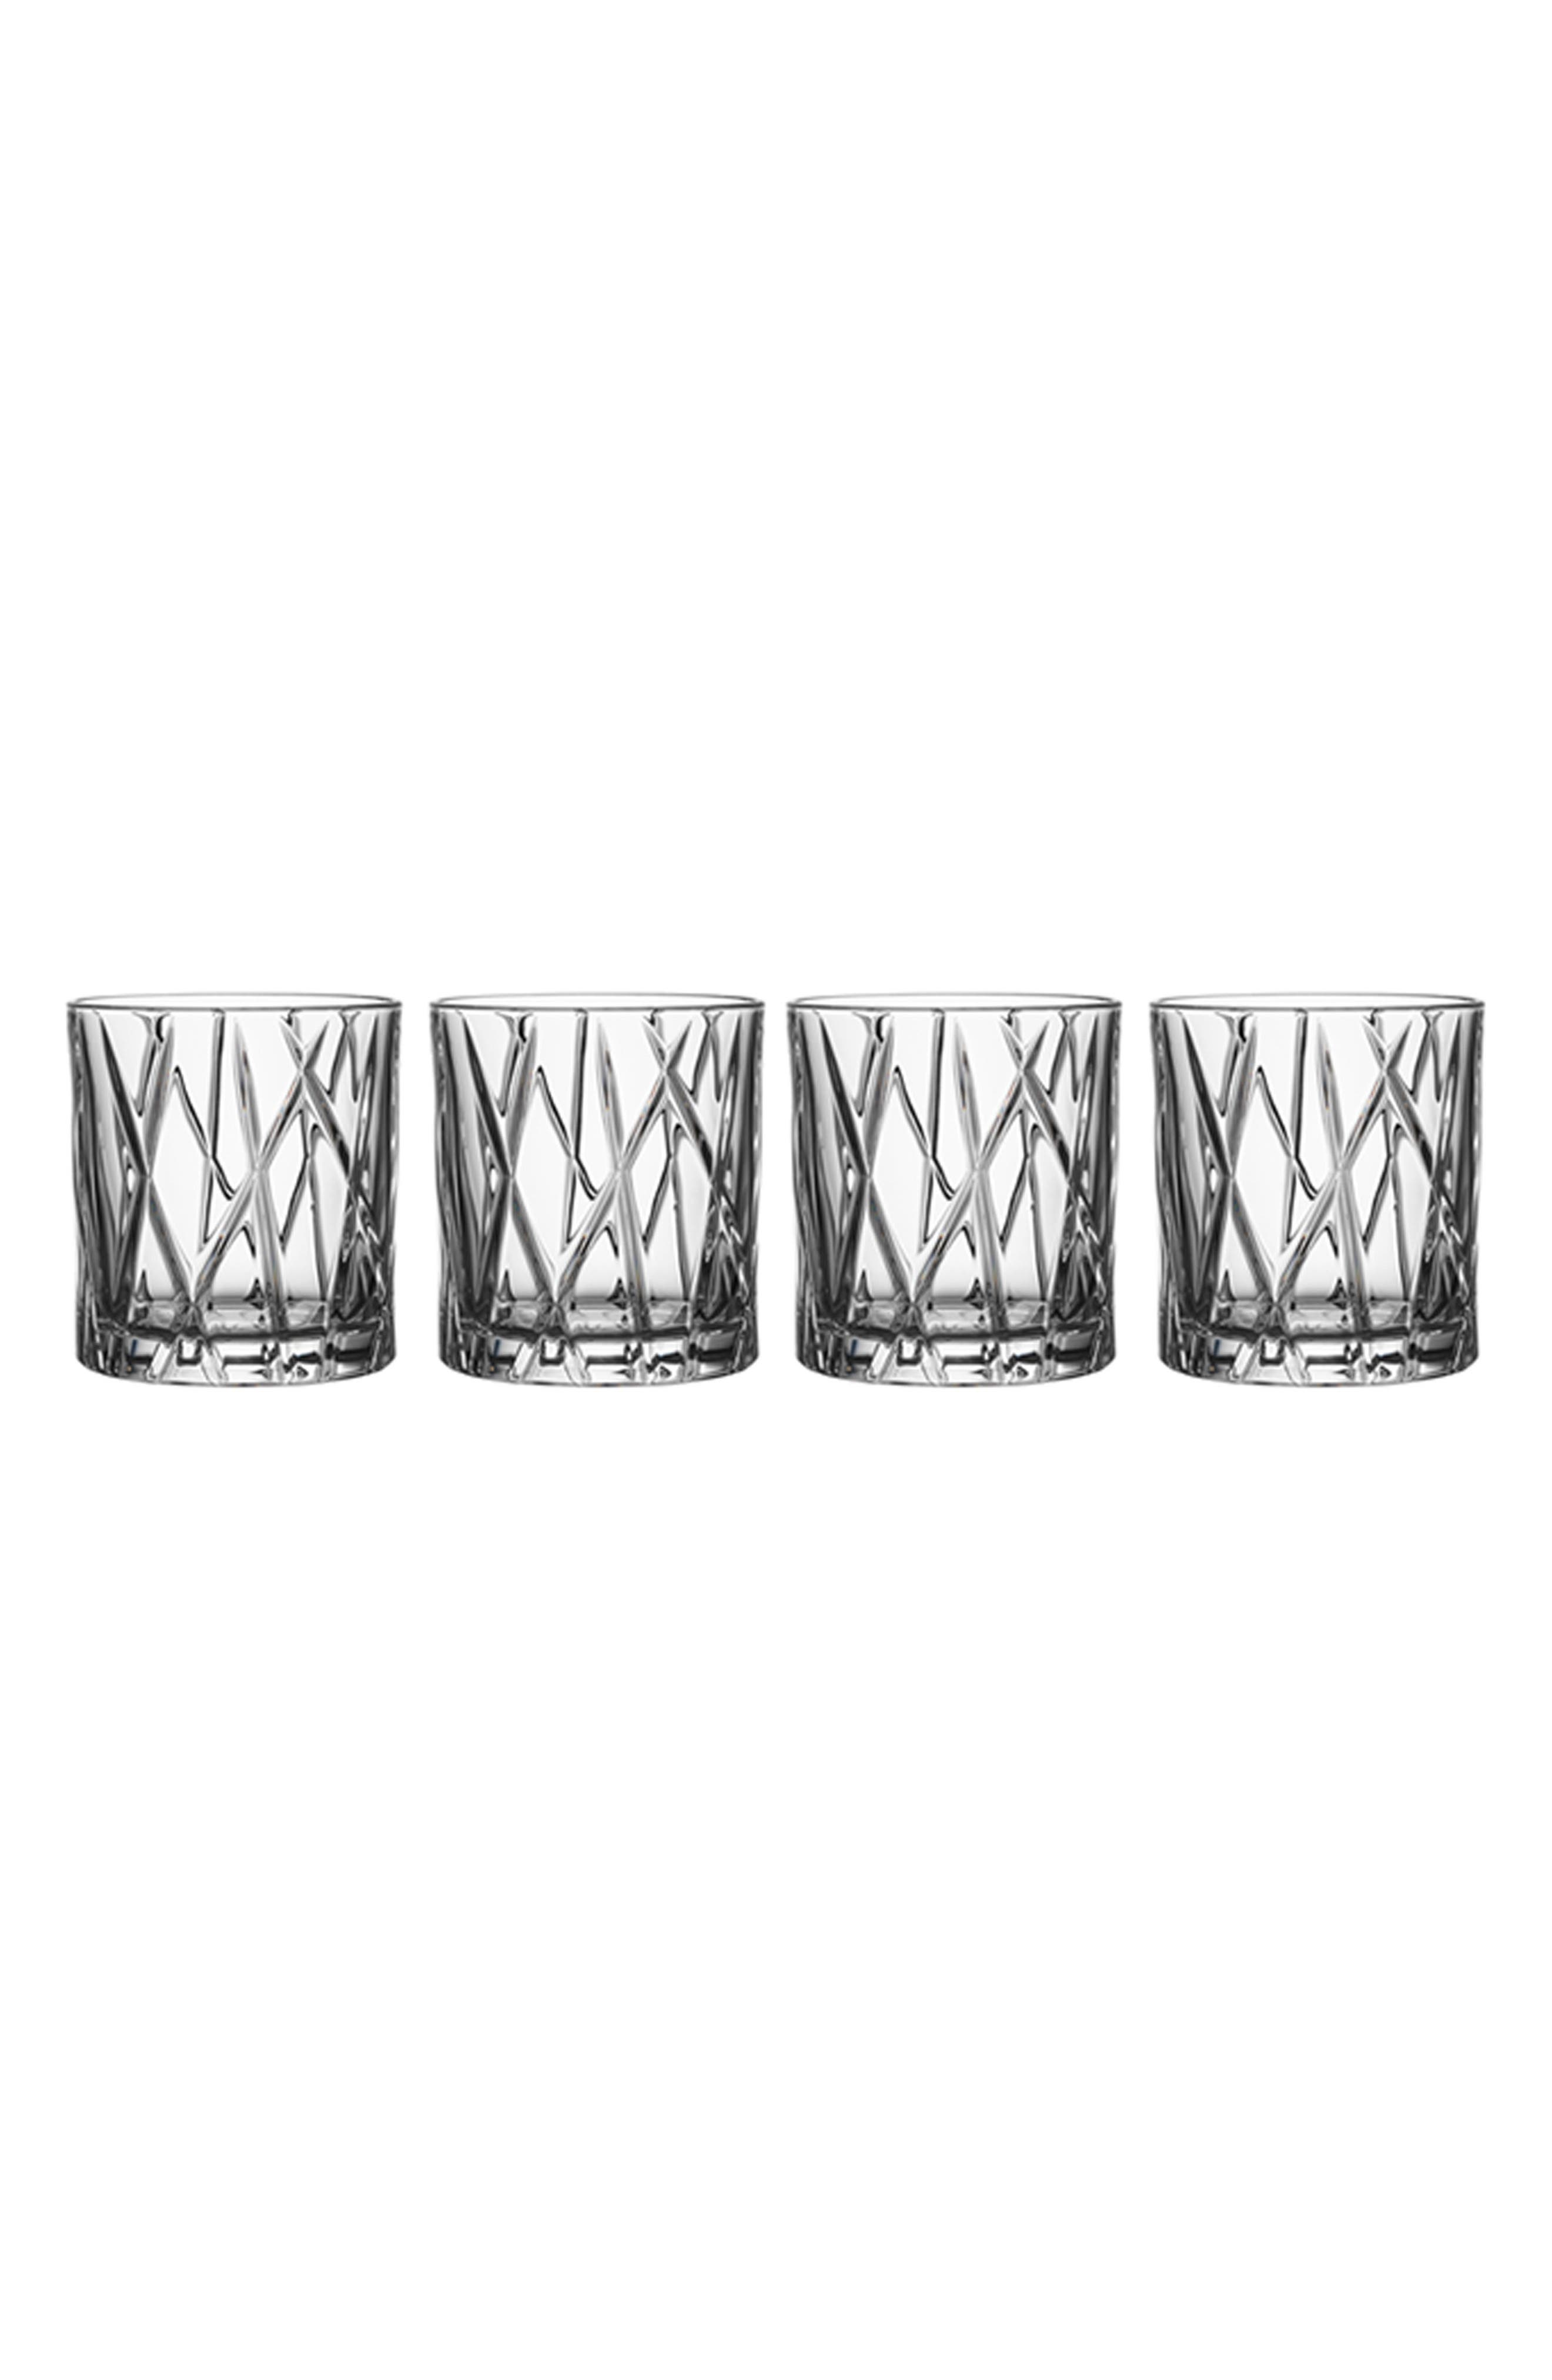 City Set of 4 Crystal Old Fashioned Glasses,                         Main,                         color, Clear